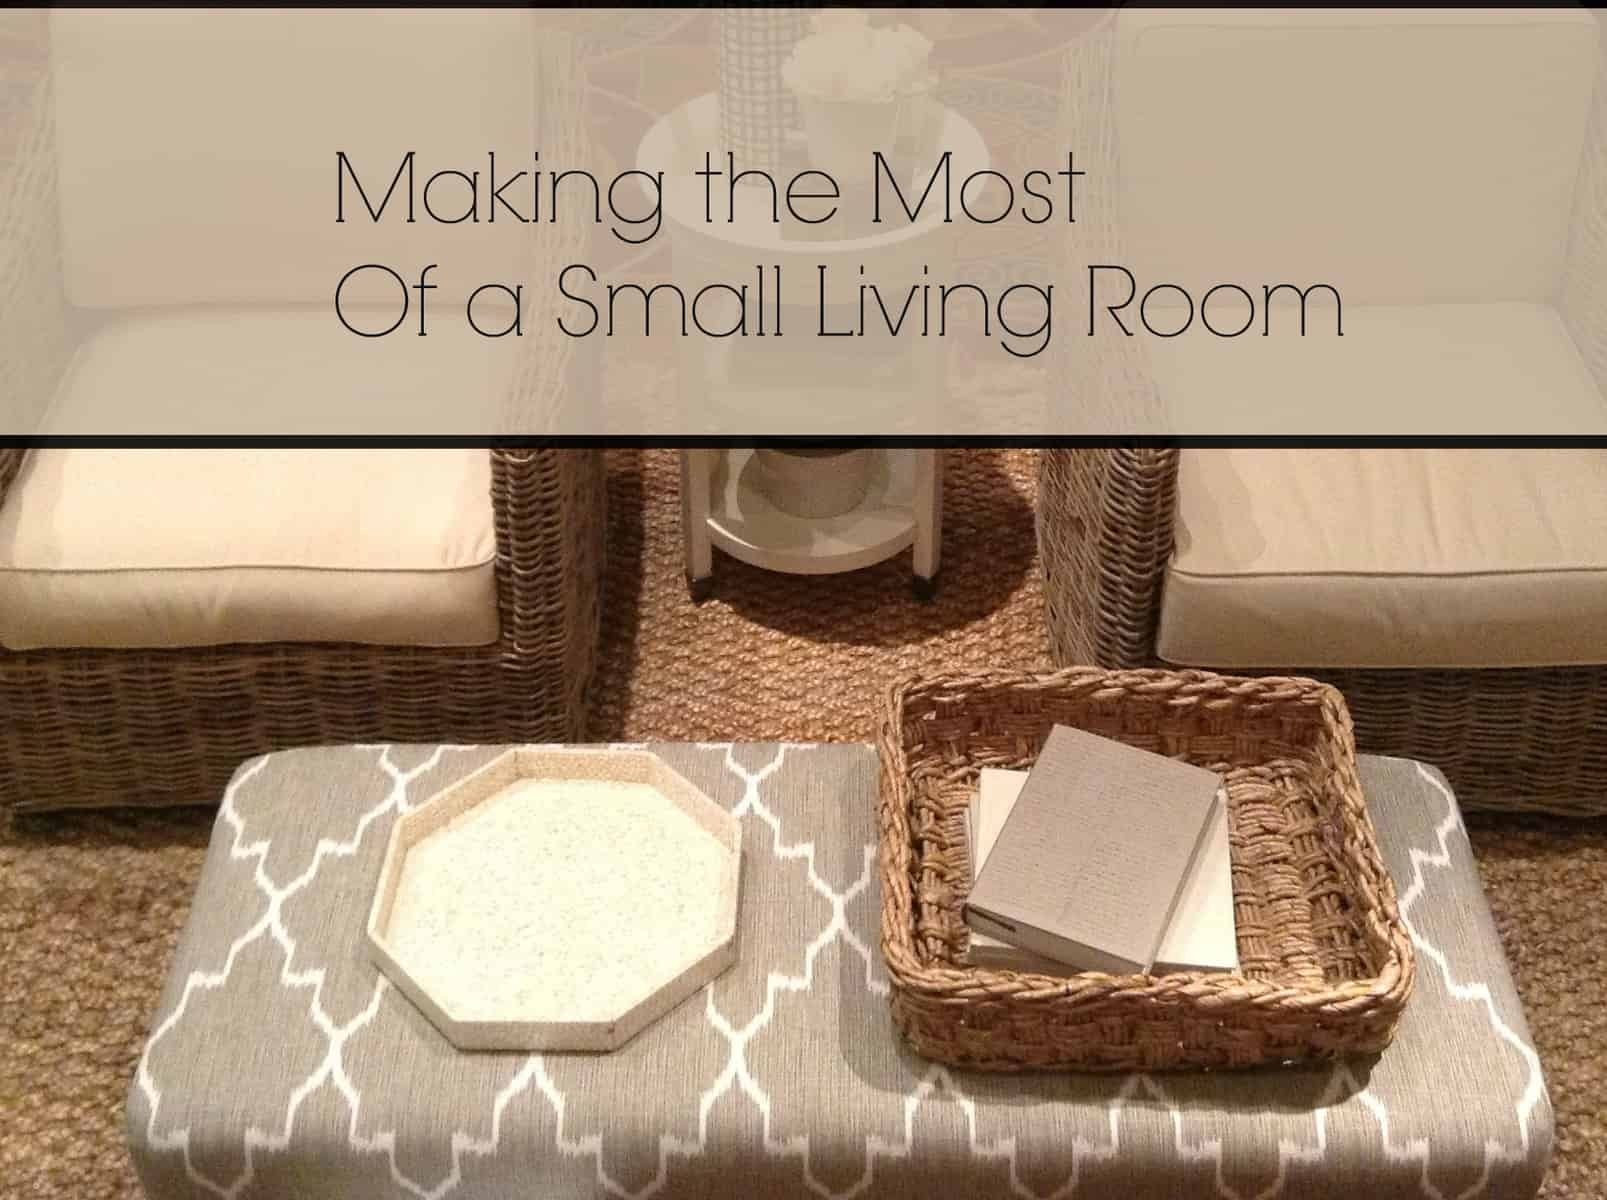 Making the most of a small living room heartwork for Making the most of a small bedroom